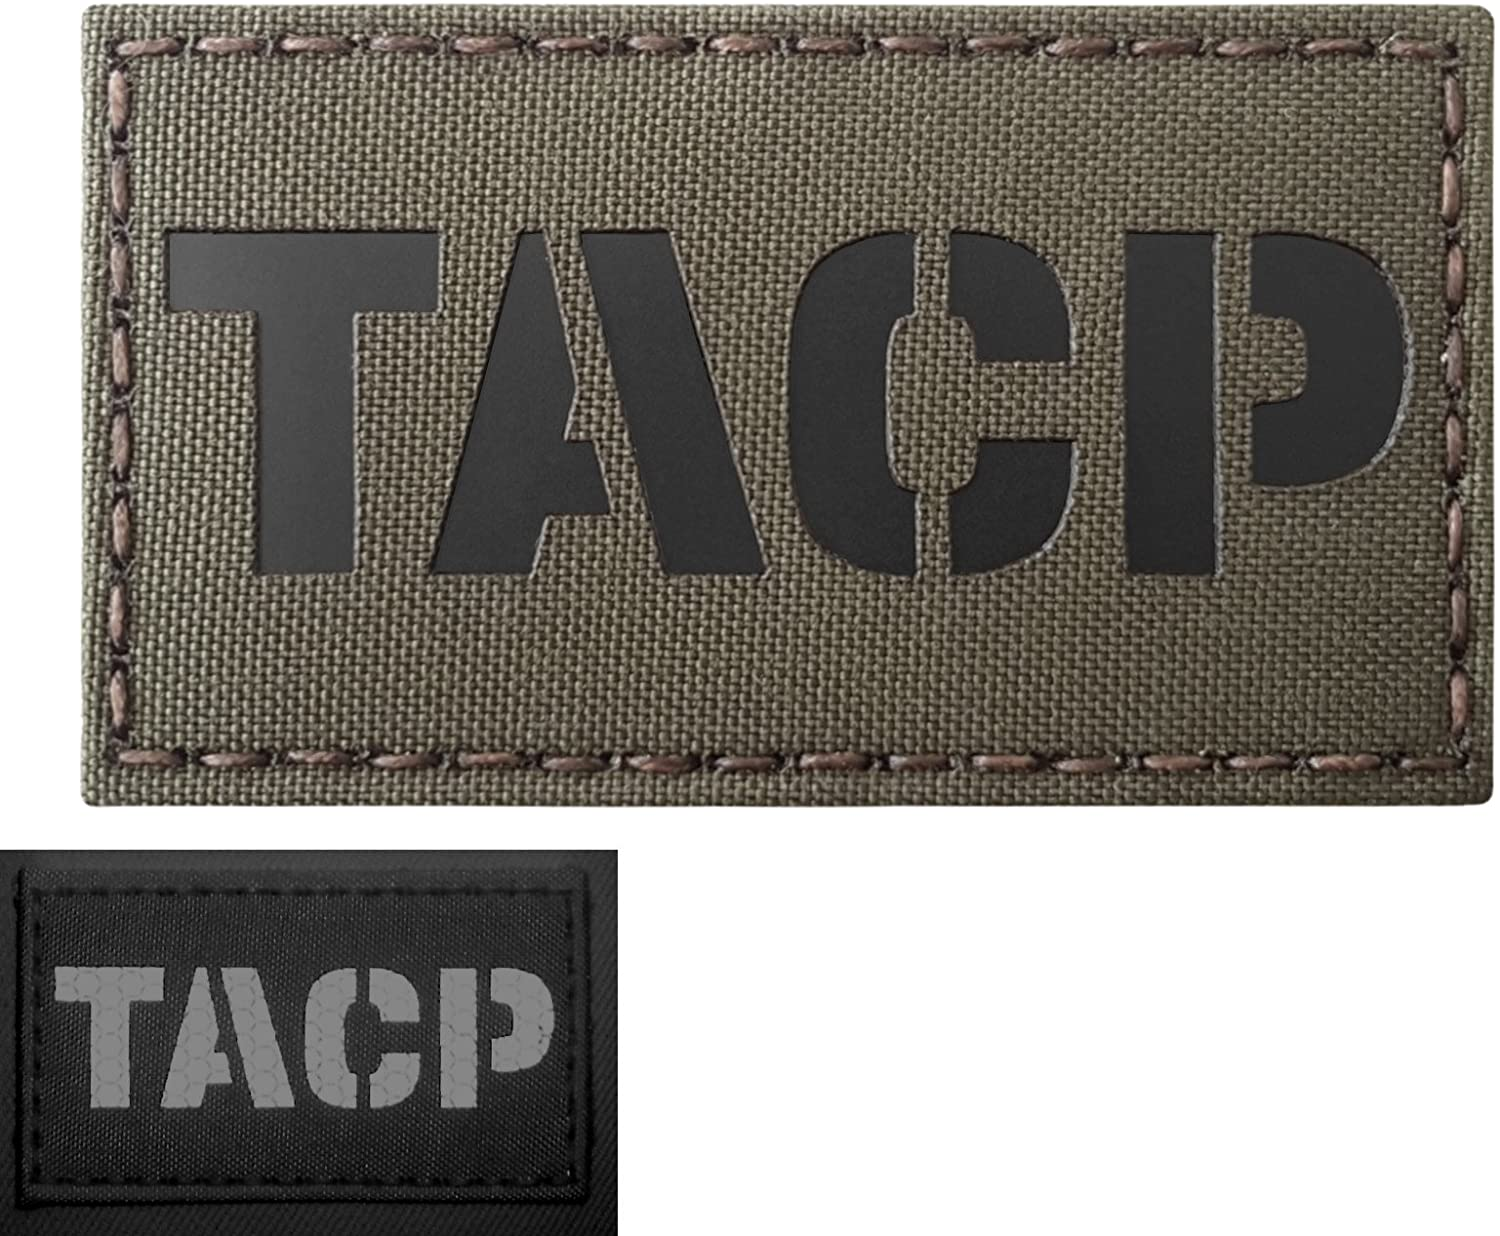 Ranger Green TACP Tactical Air Control Party Air Support AFSOC AFSC 1C4X1 Infrared IR Tactical Hook&Loop Patch